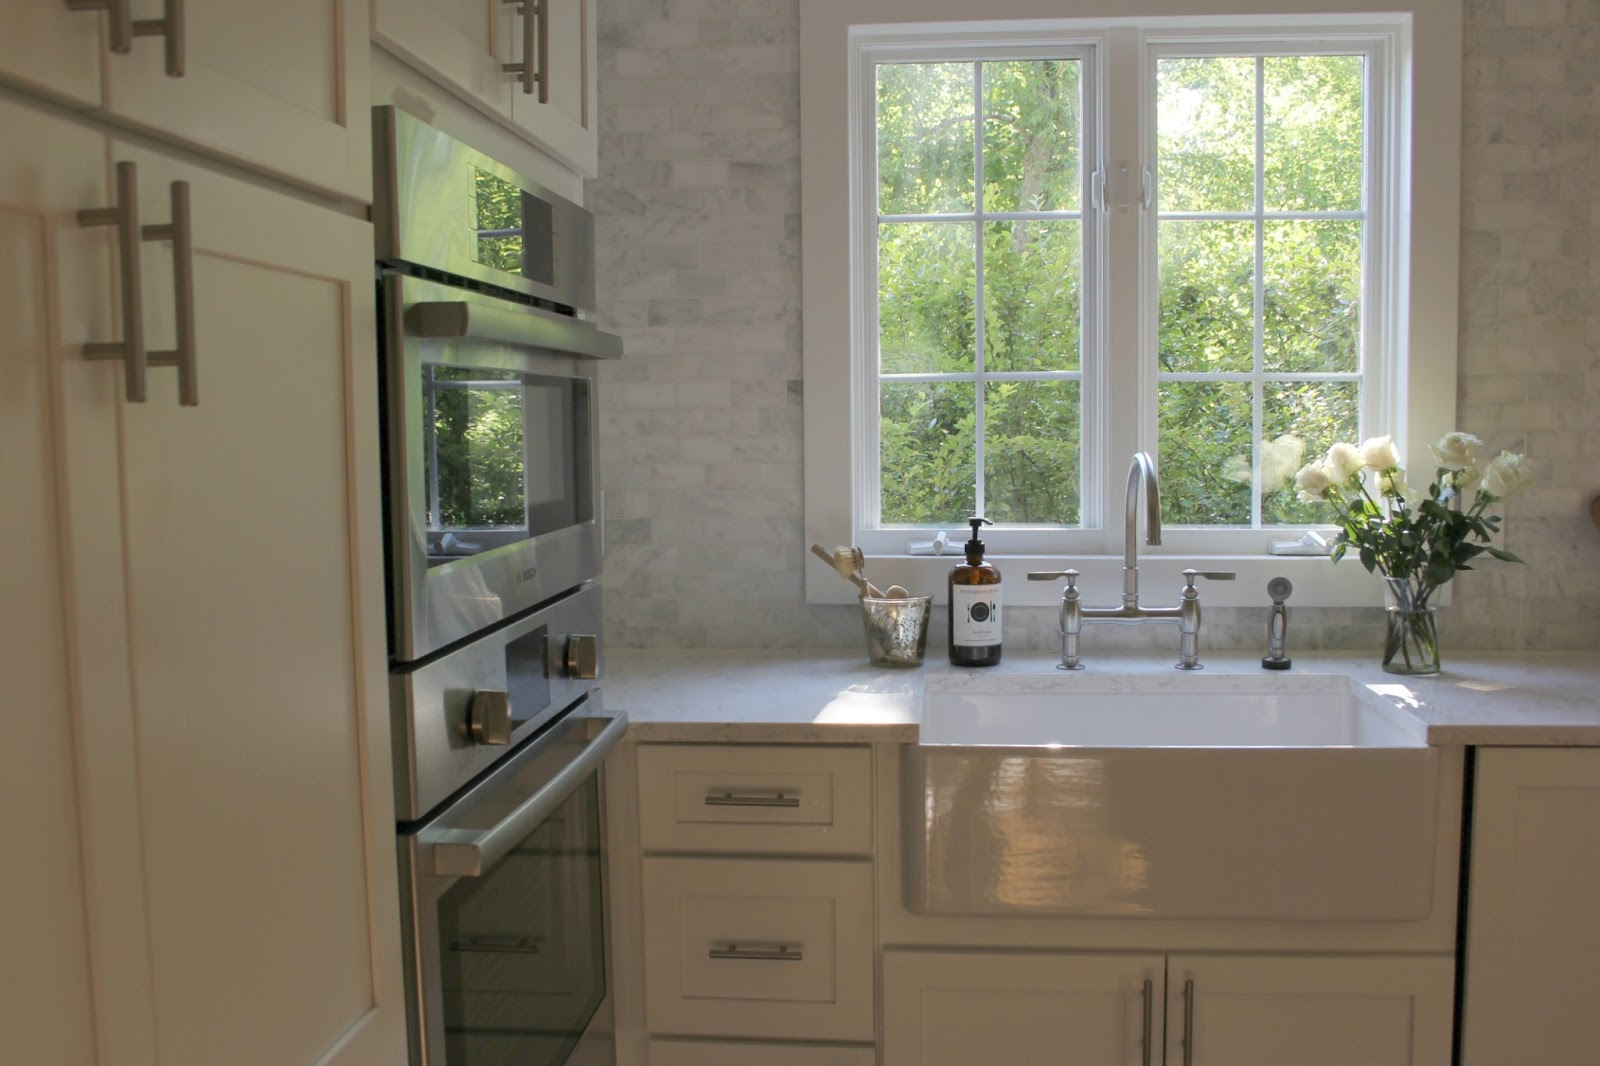 Modern farmhouse kitchen with apron front farm sink and marble subway tile by Hello Lovely Studio